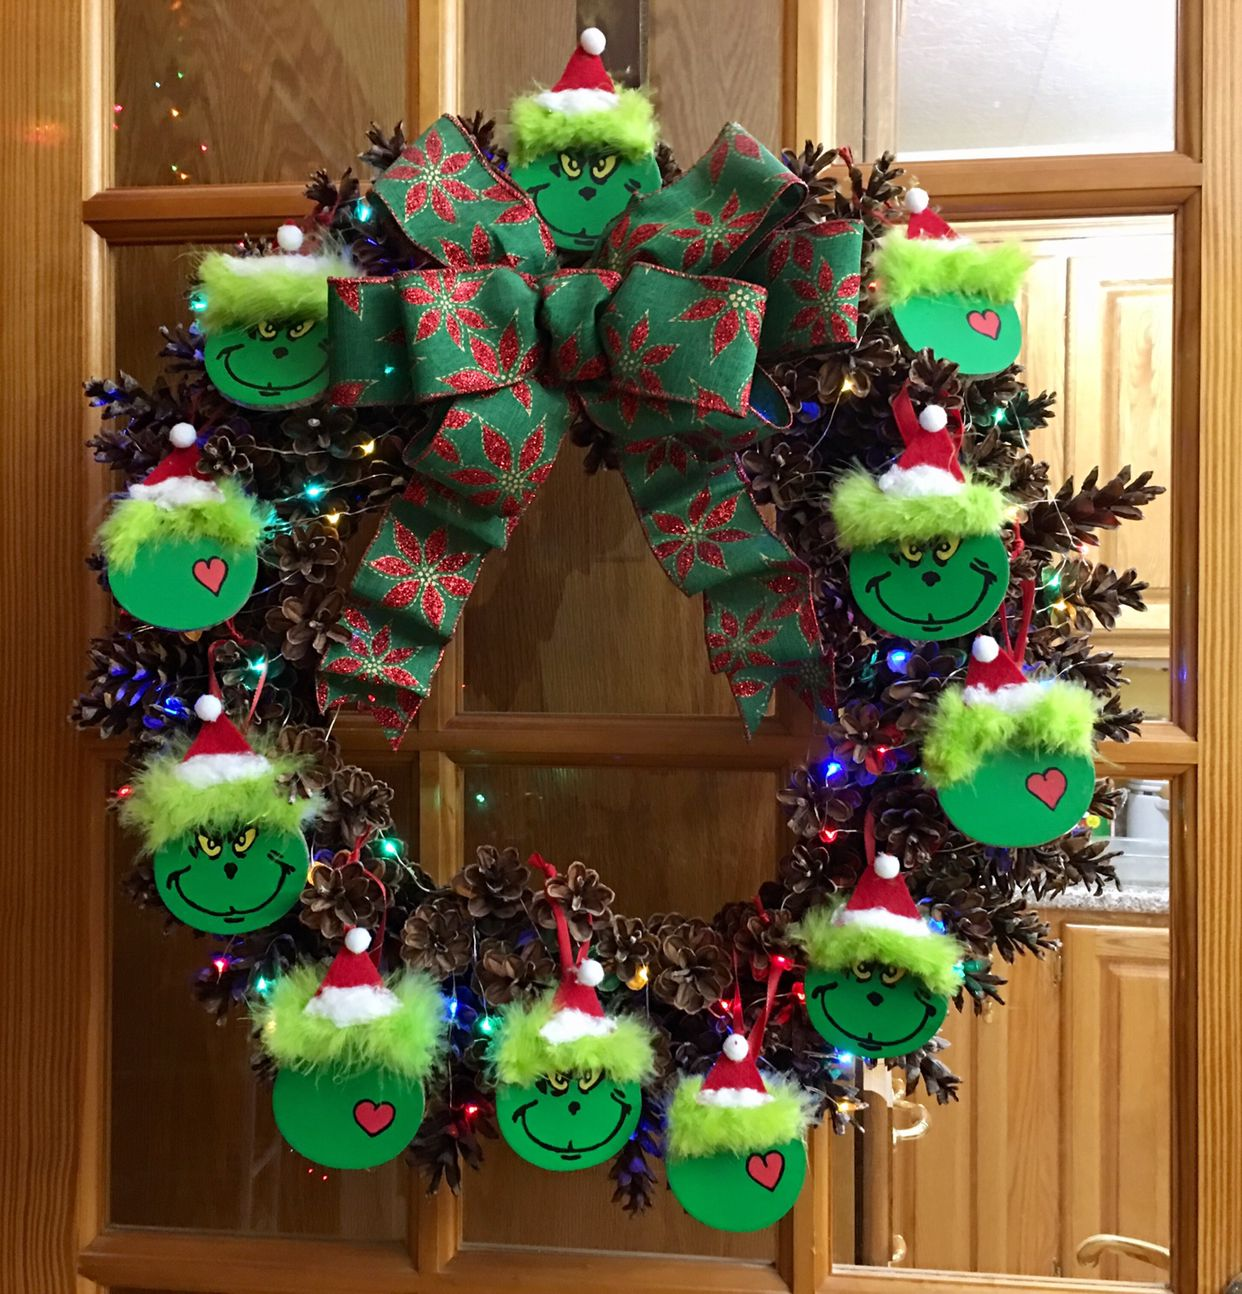 Grinch Inspired Pinecone Christmas Wreath Grinch Christmas Decorations Christmas Wreaths Christmas Craft Projects